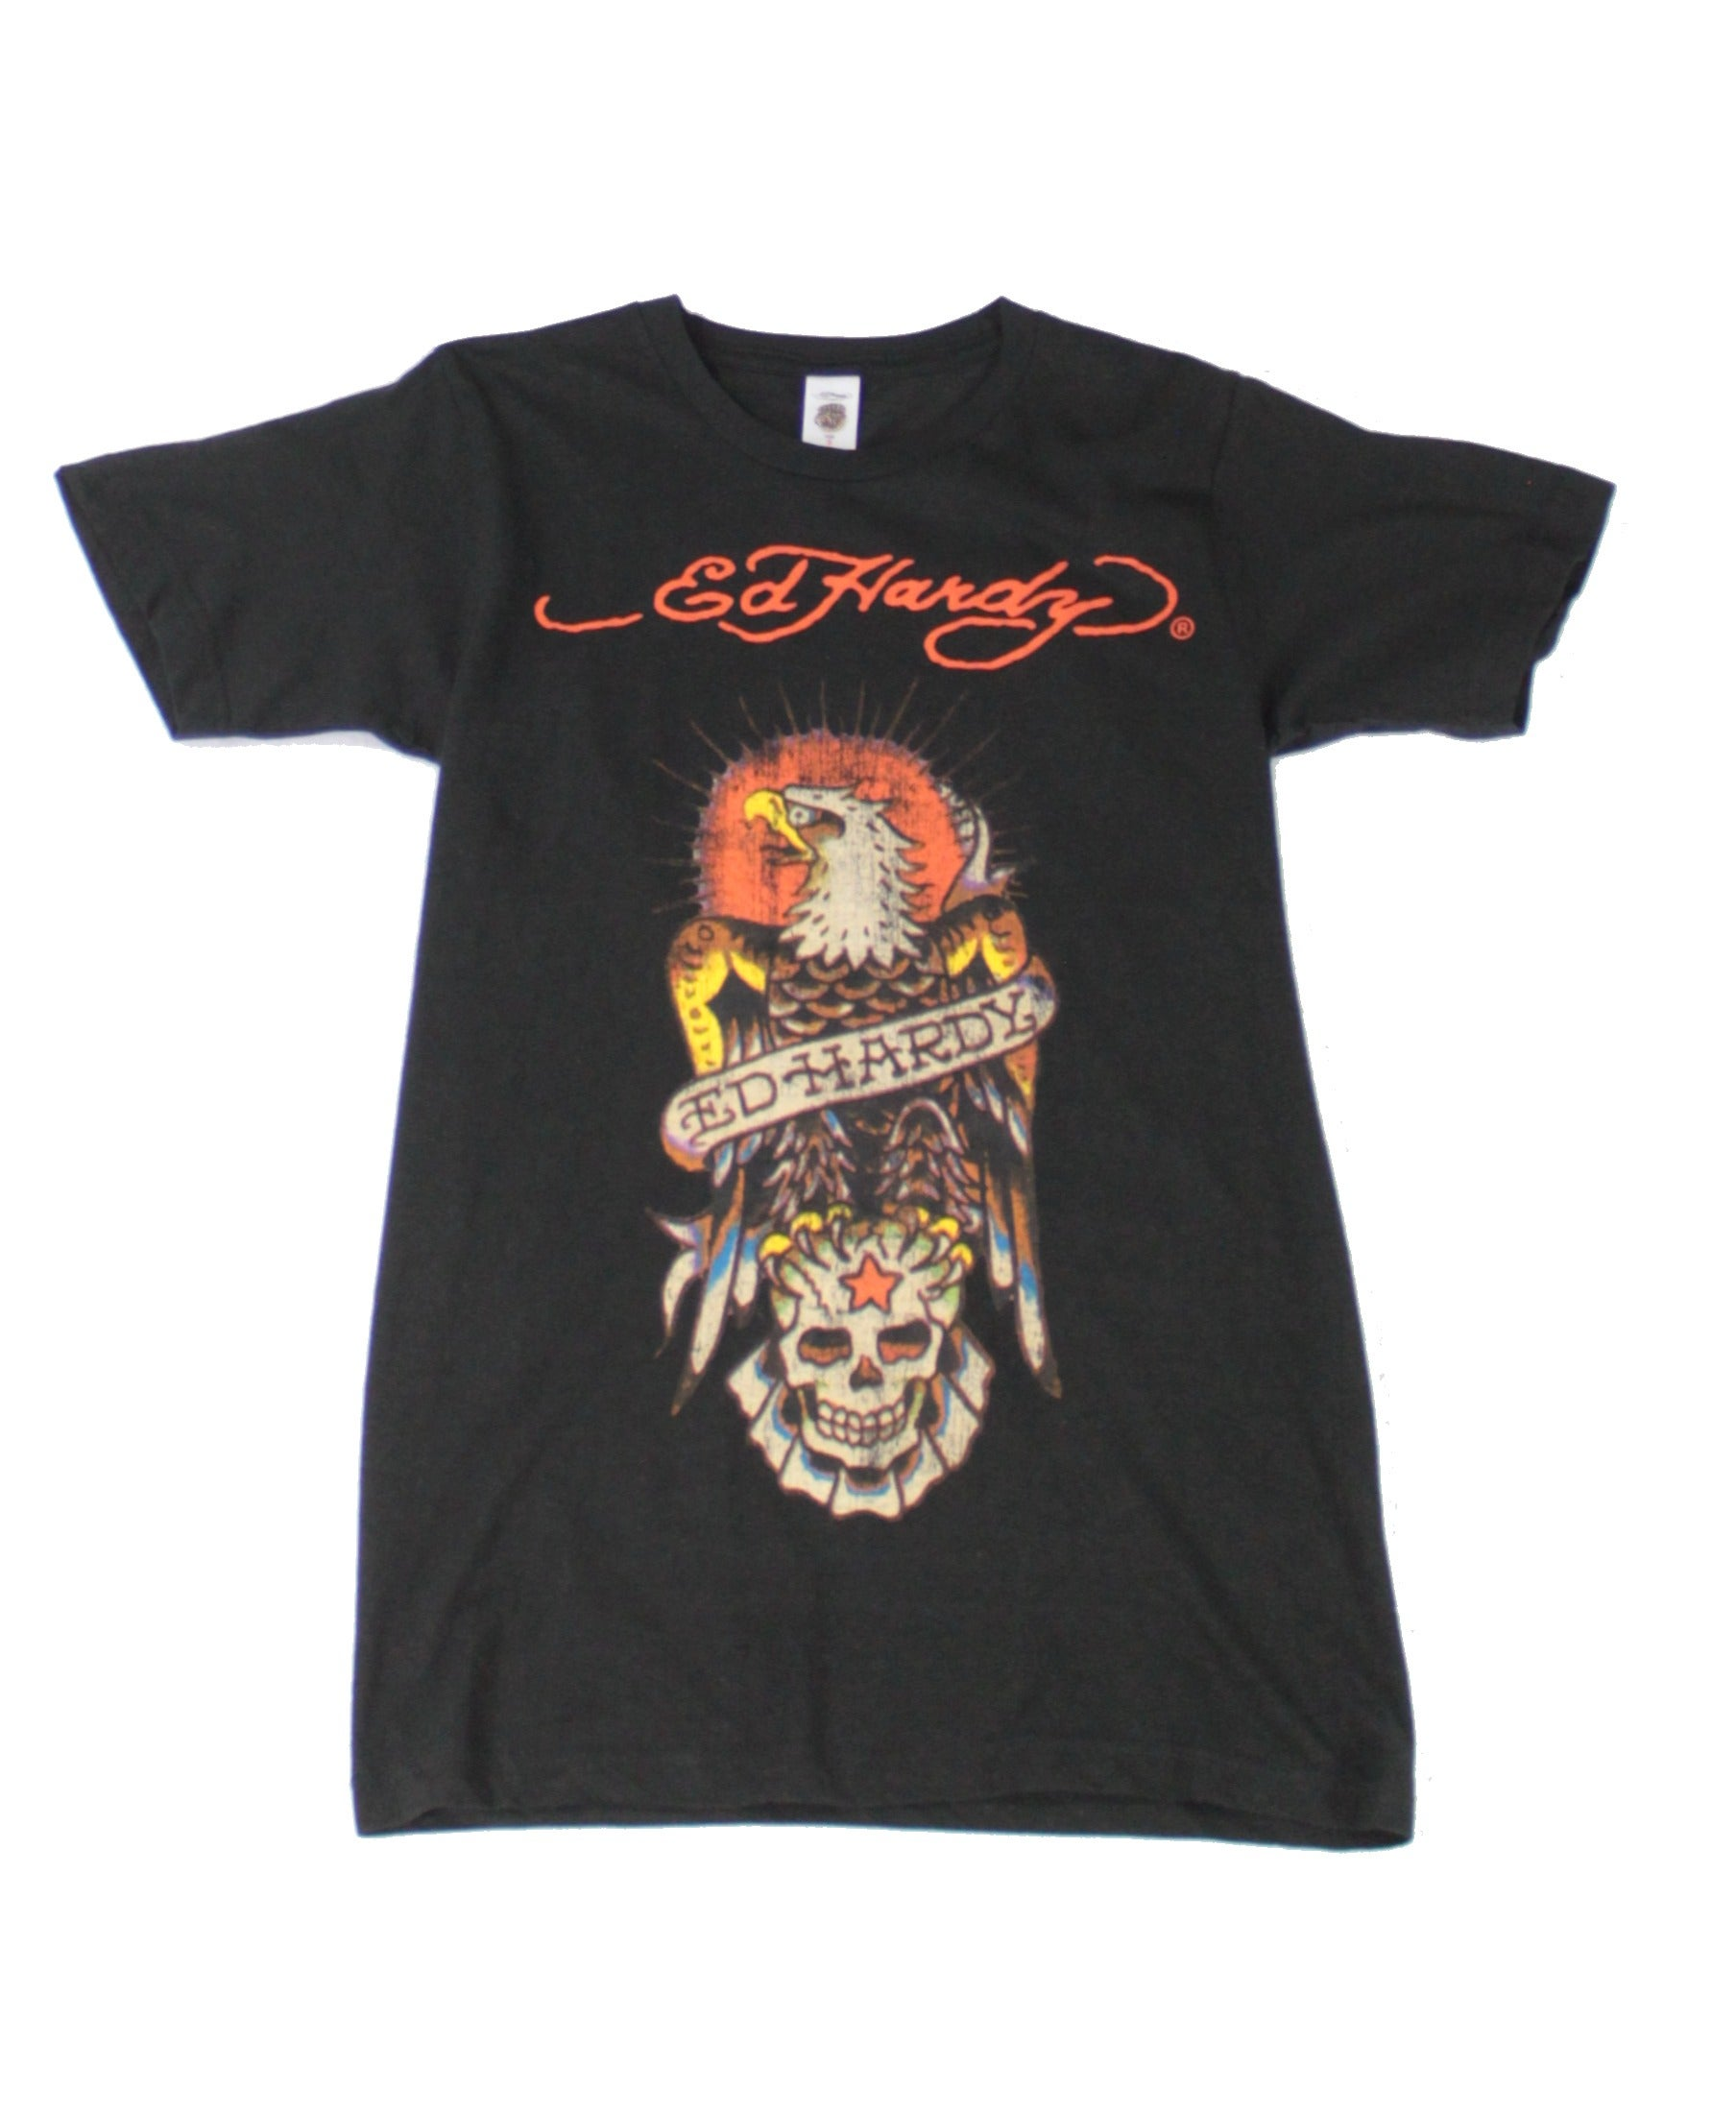 Ed Hardy Mens T-Shirt Black Size Small S Crew Neck Eagle Graphic Tee